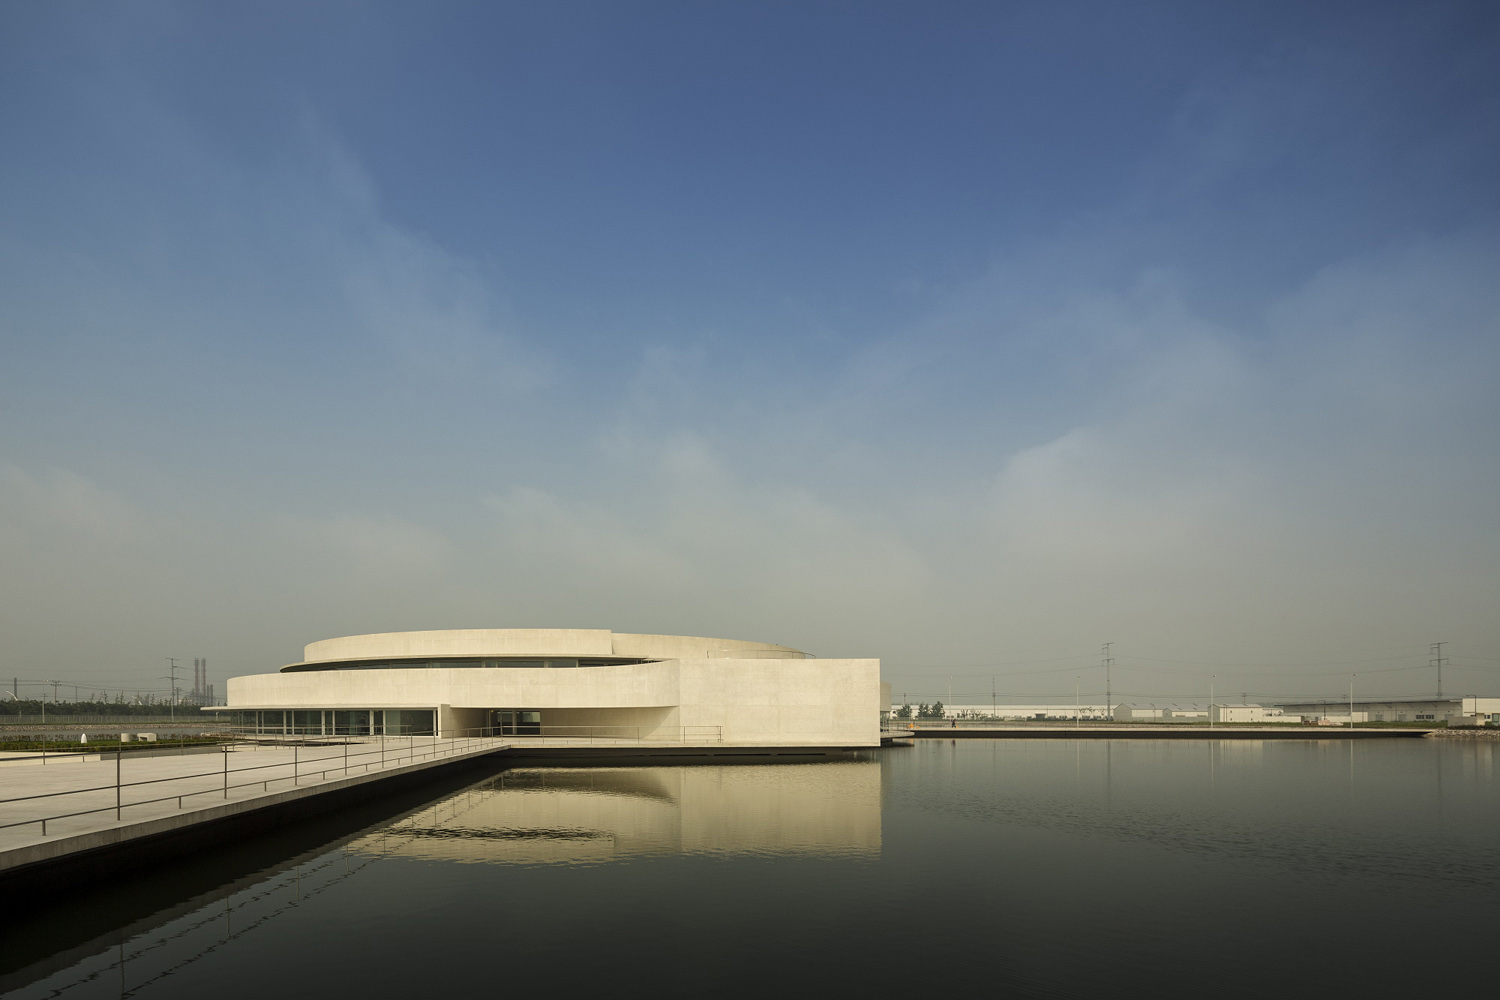 mm_The Building on the Water design by Álvaro Siza + Carlos Castanheira_12